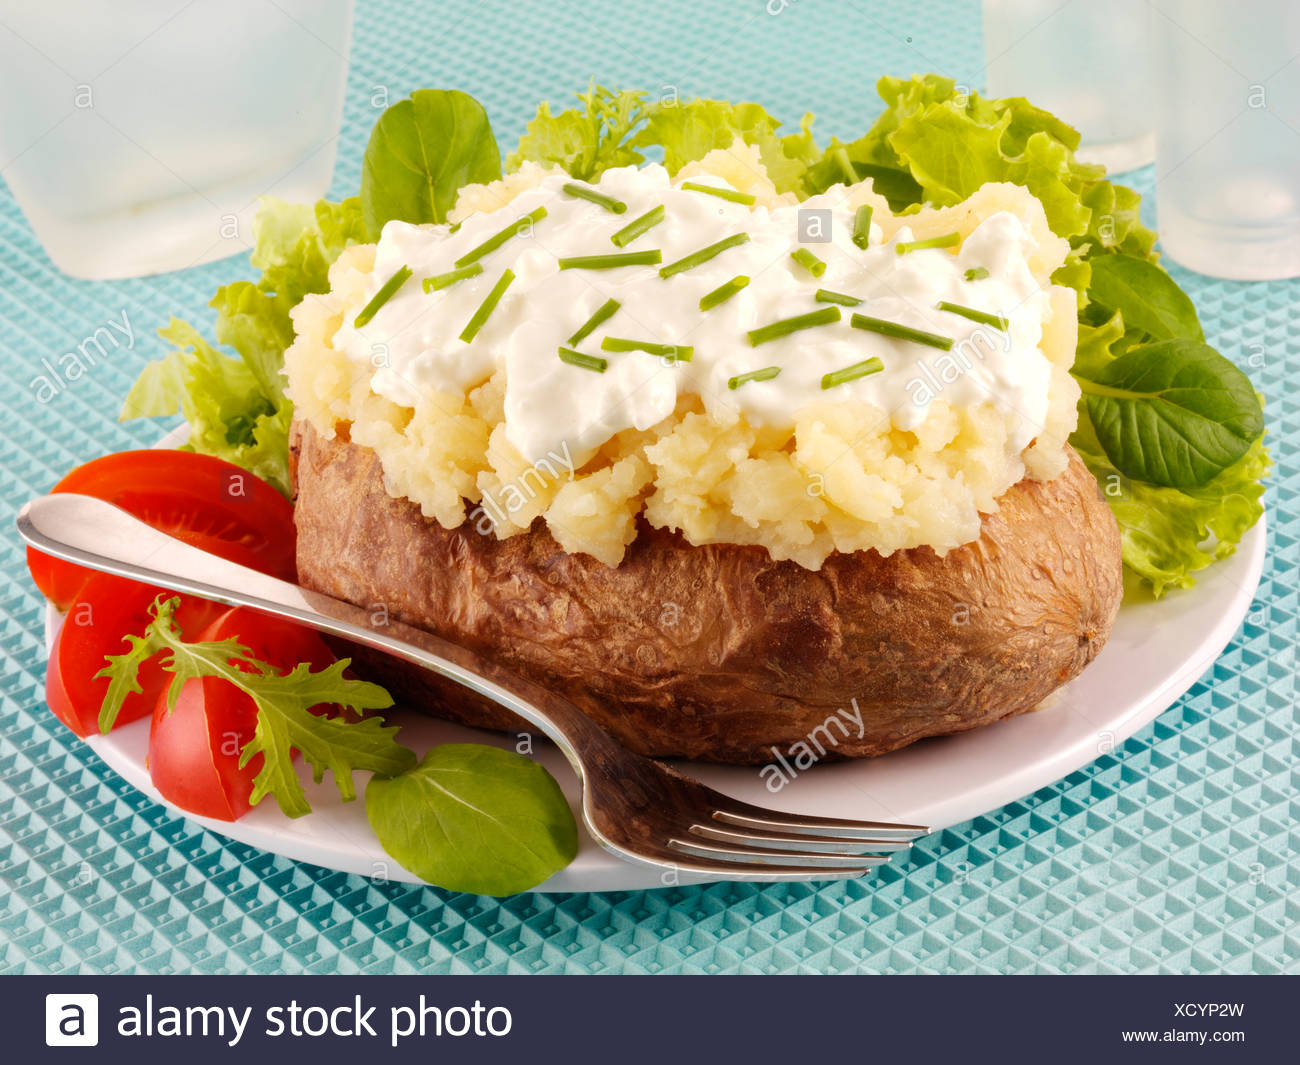 Phenomenal Baked Potato With Cottage Cheese And Chives Stock Photo Download Free Architecture Designs Scobabritishbridgeorg